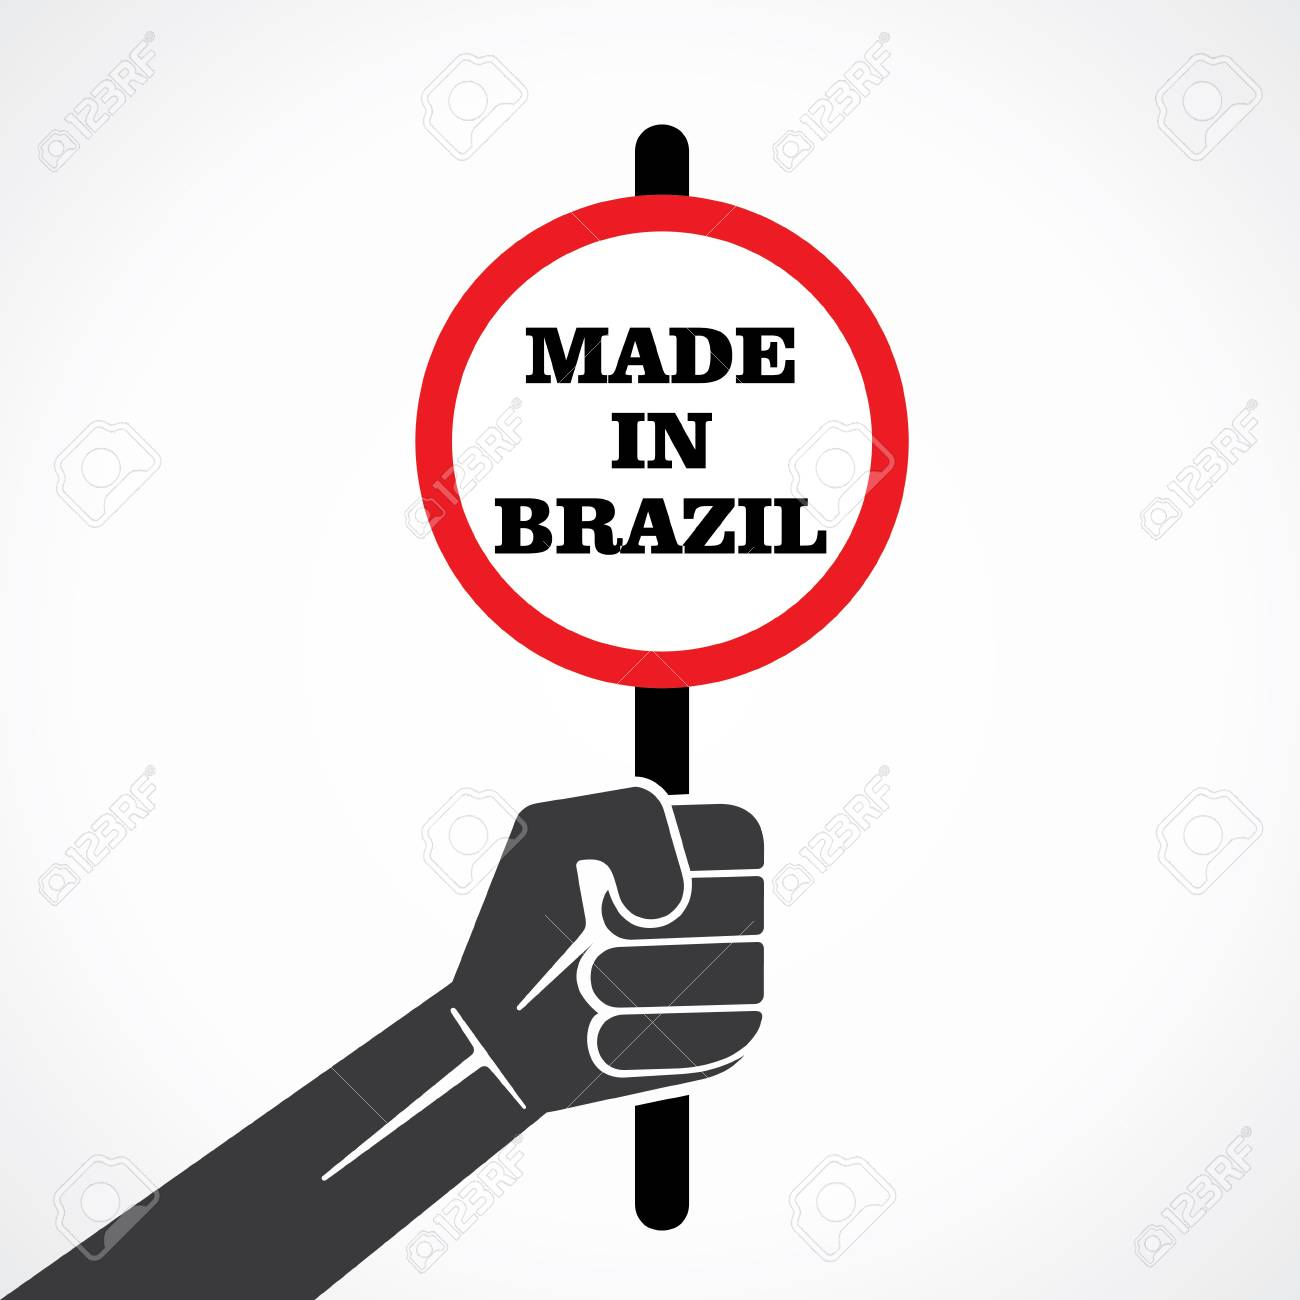 made in brazil word banner hold in hand stock vector Stock Vector - 22092759